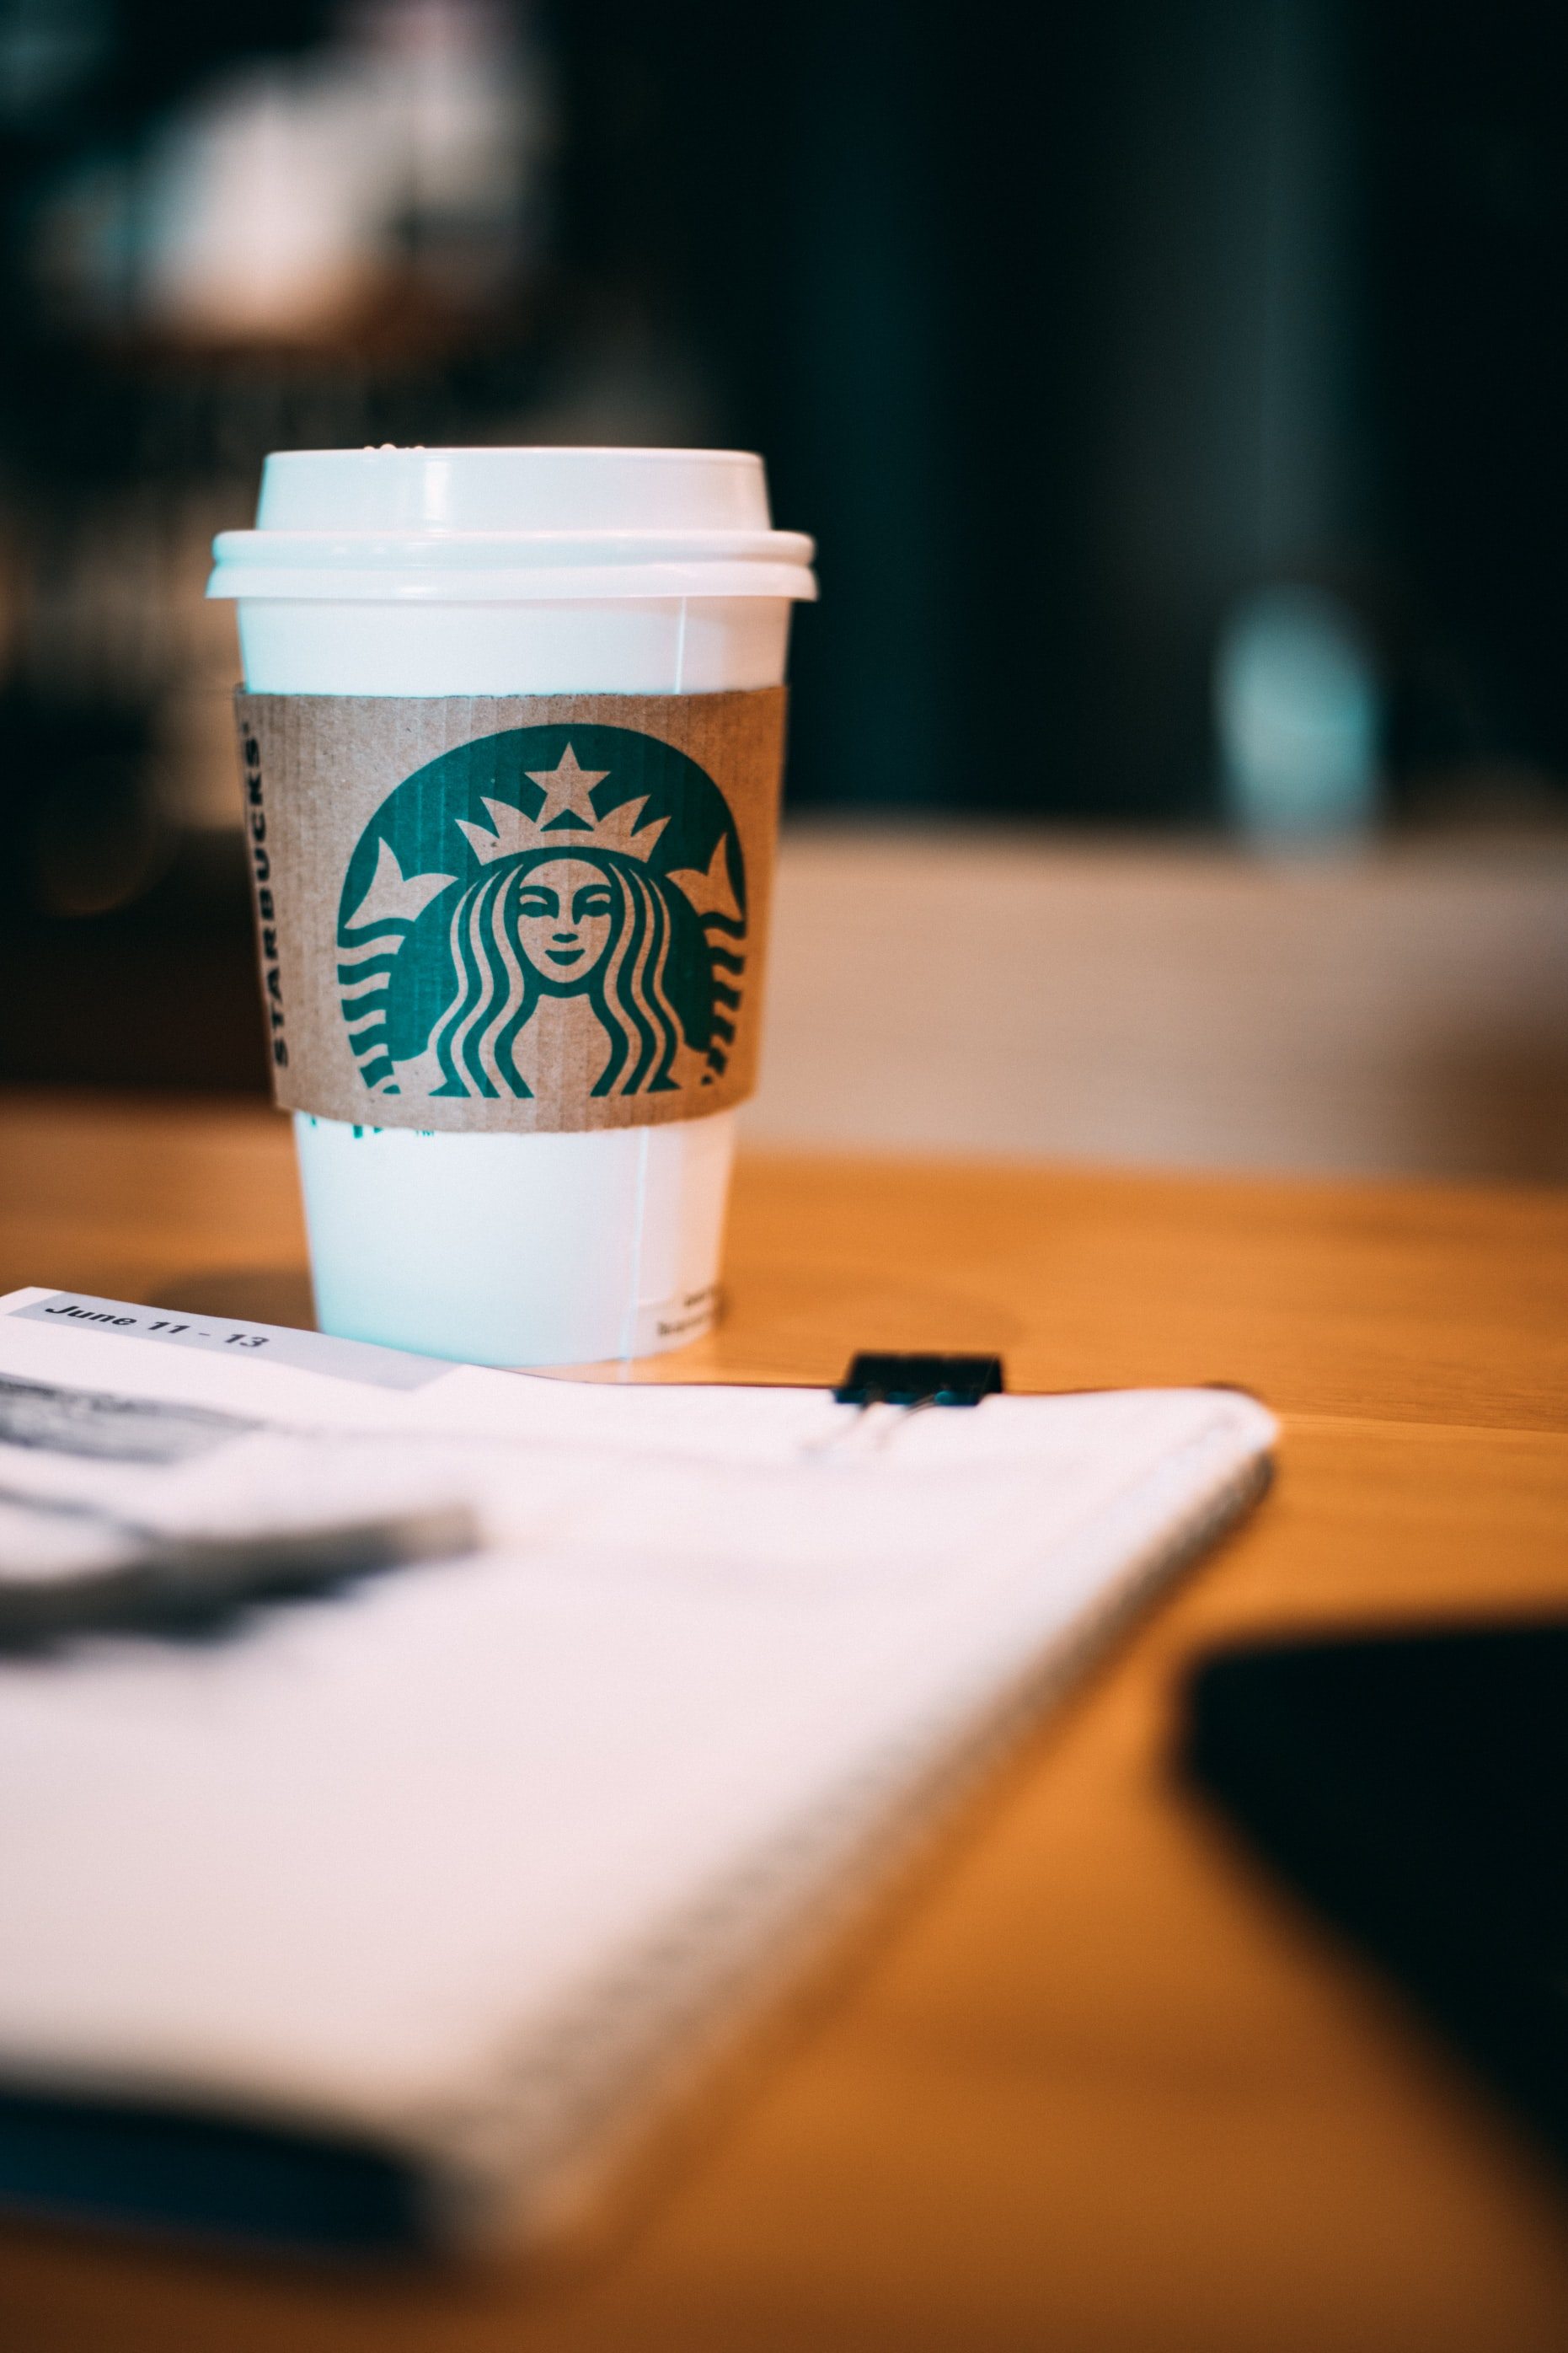 selective focus photography of Starbucks coffee cup